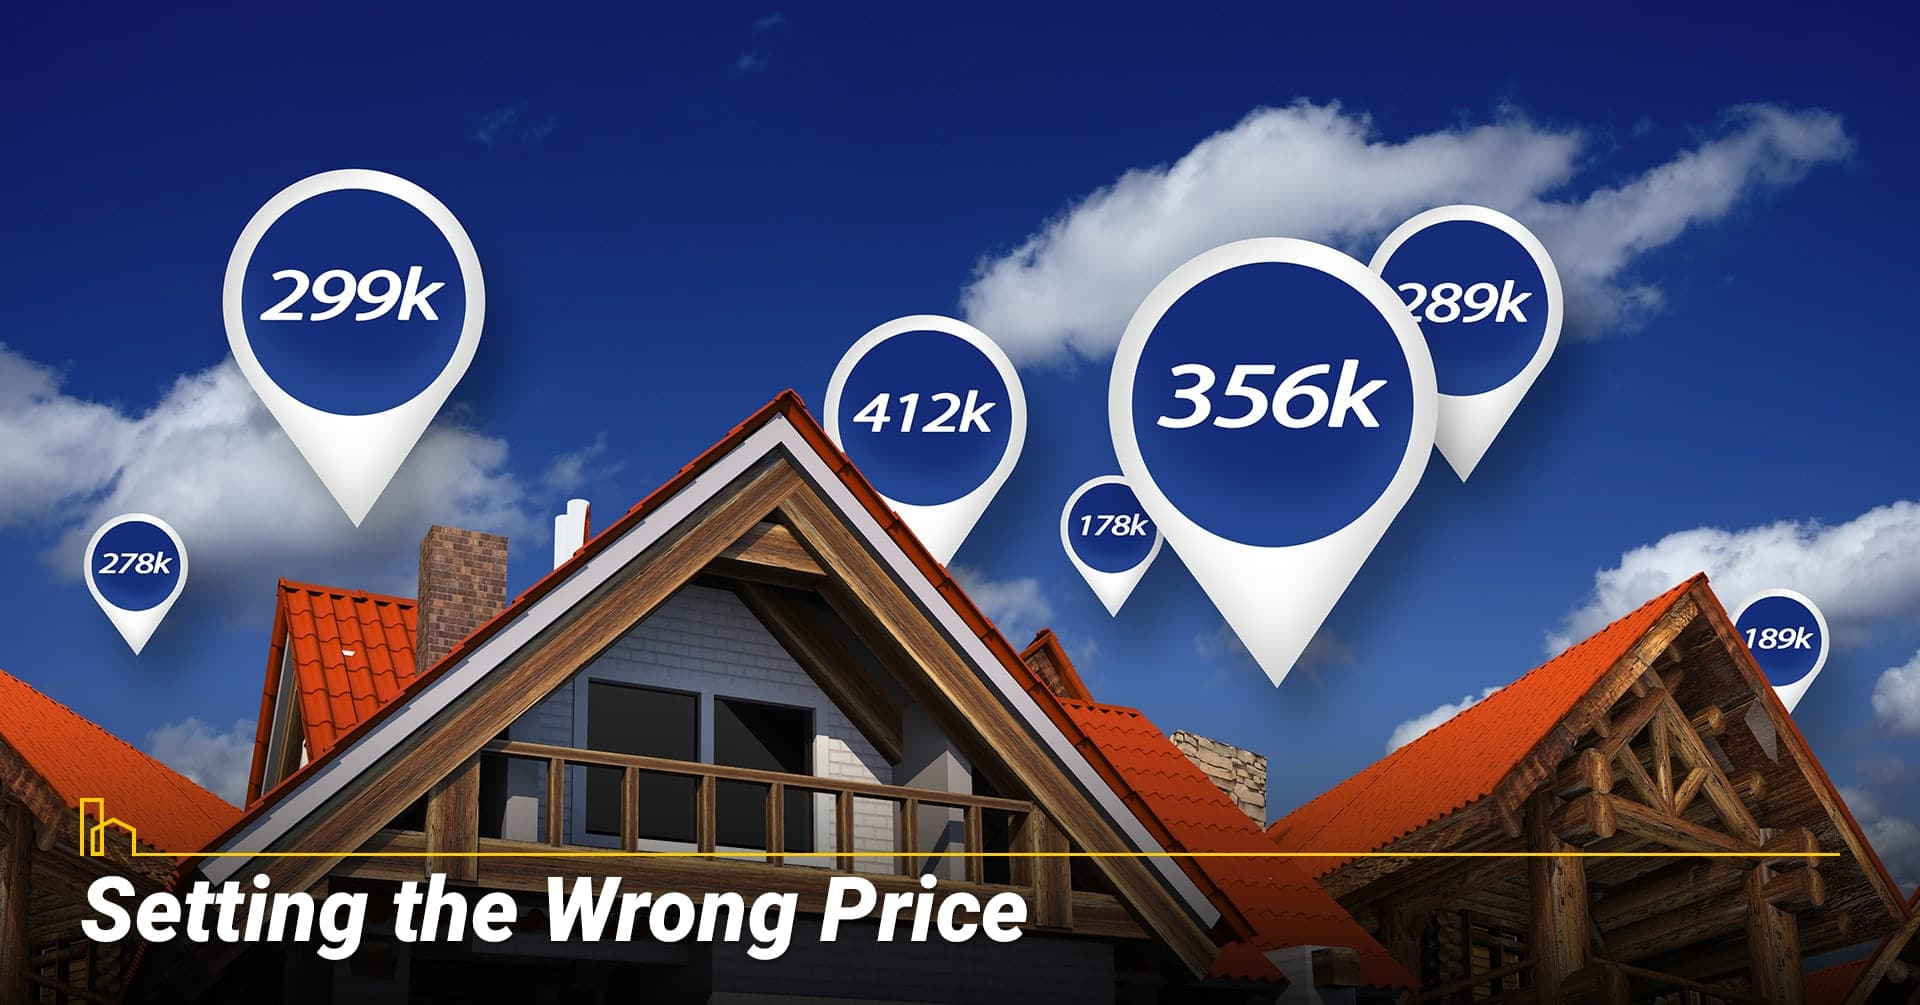 Setting the Wrong Price, asking for too much